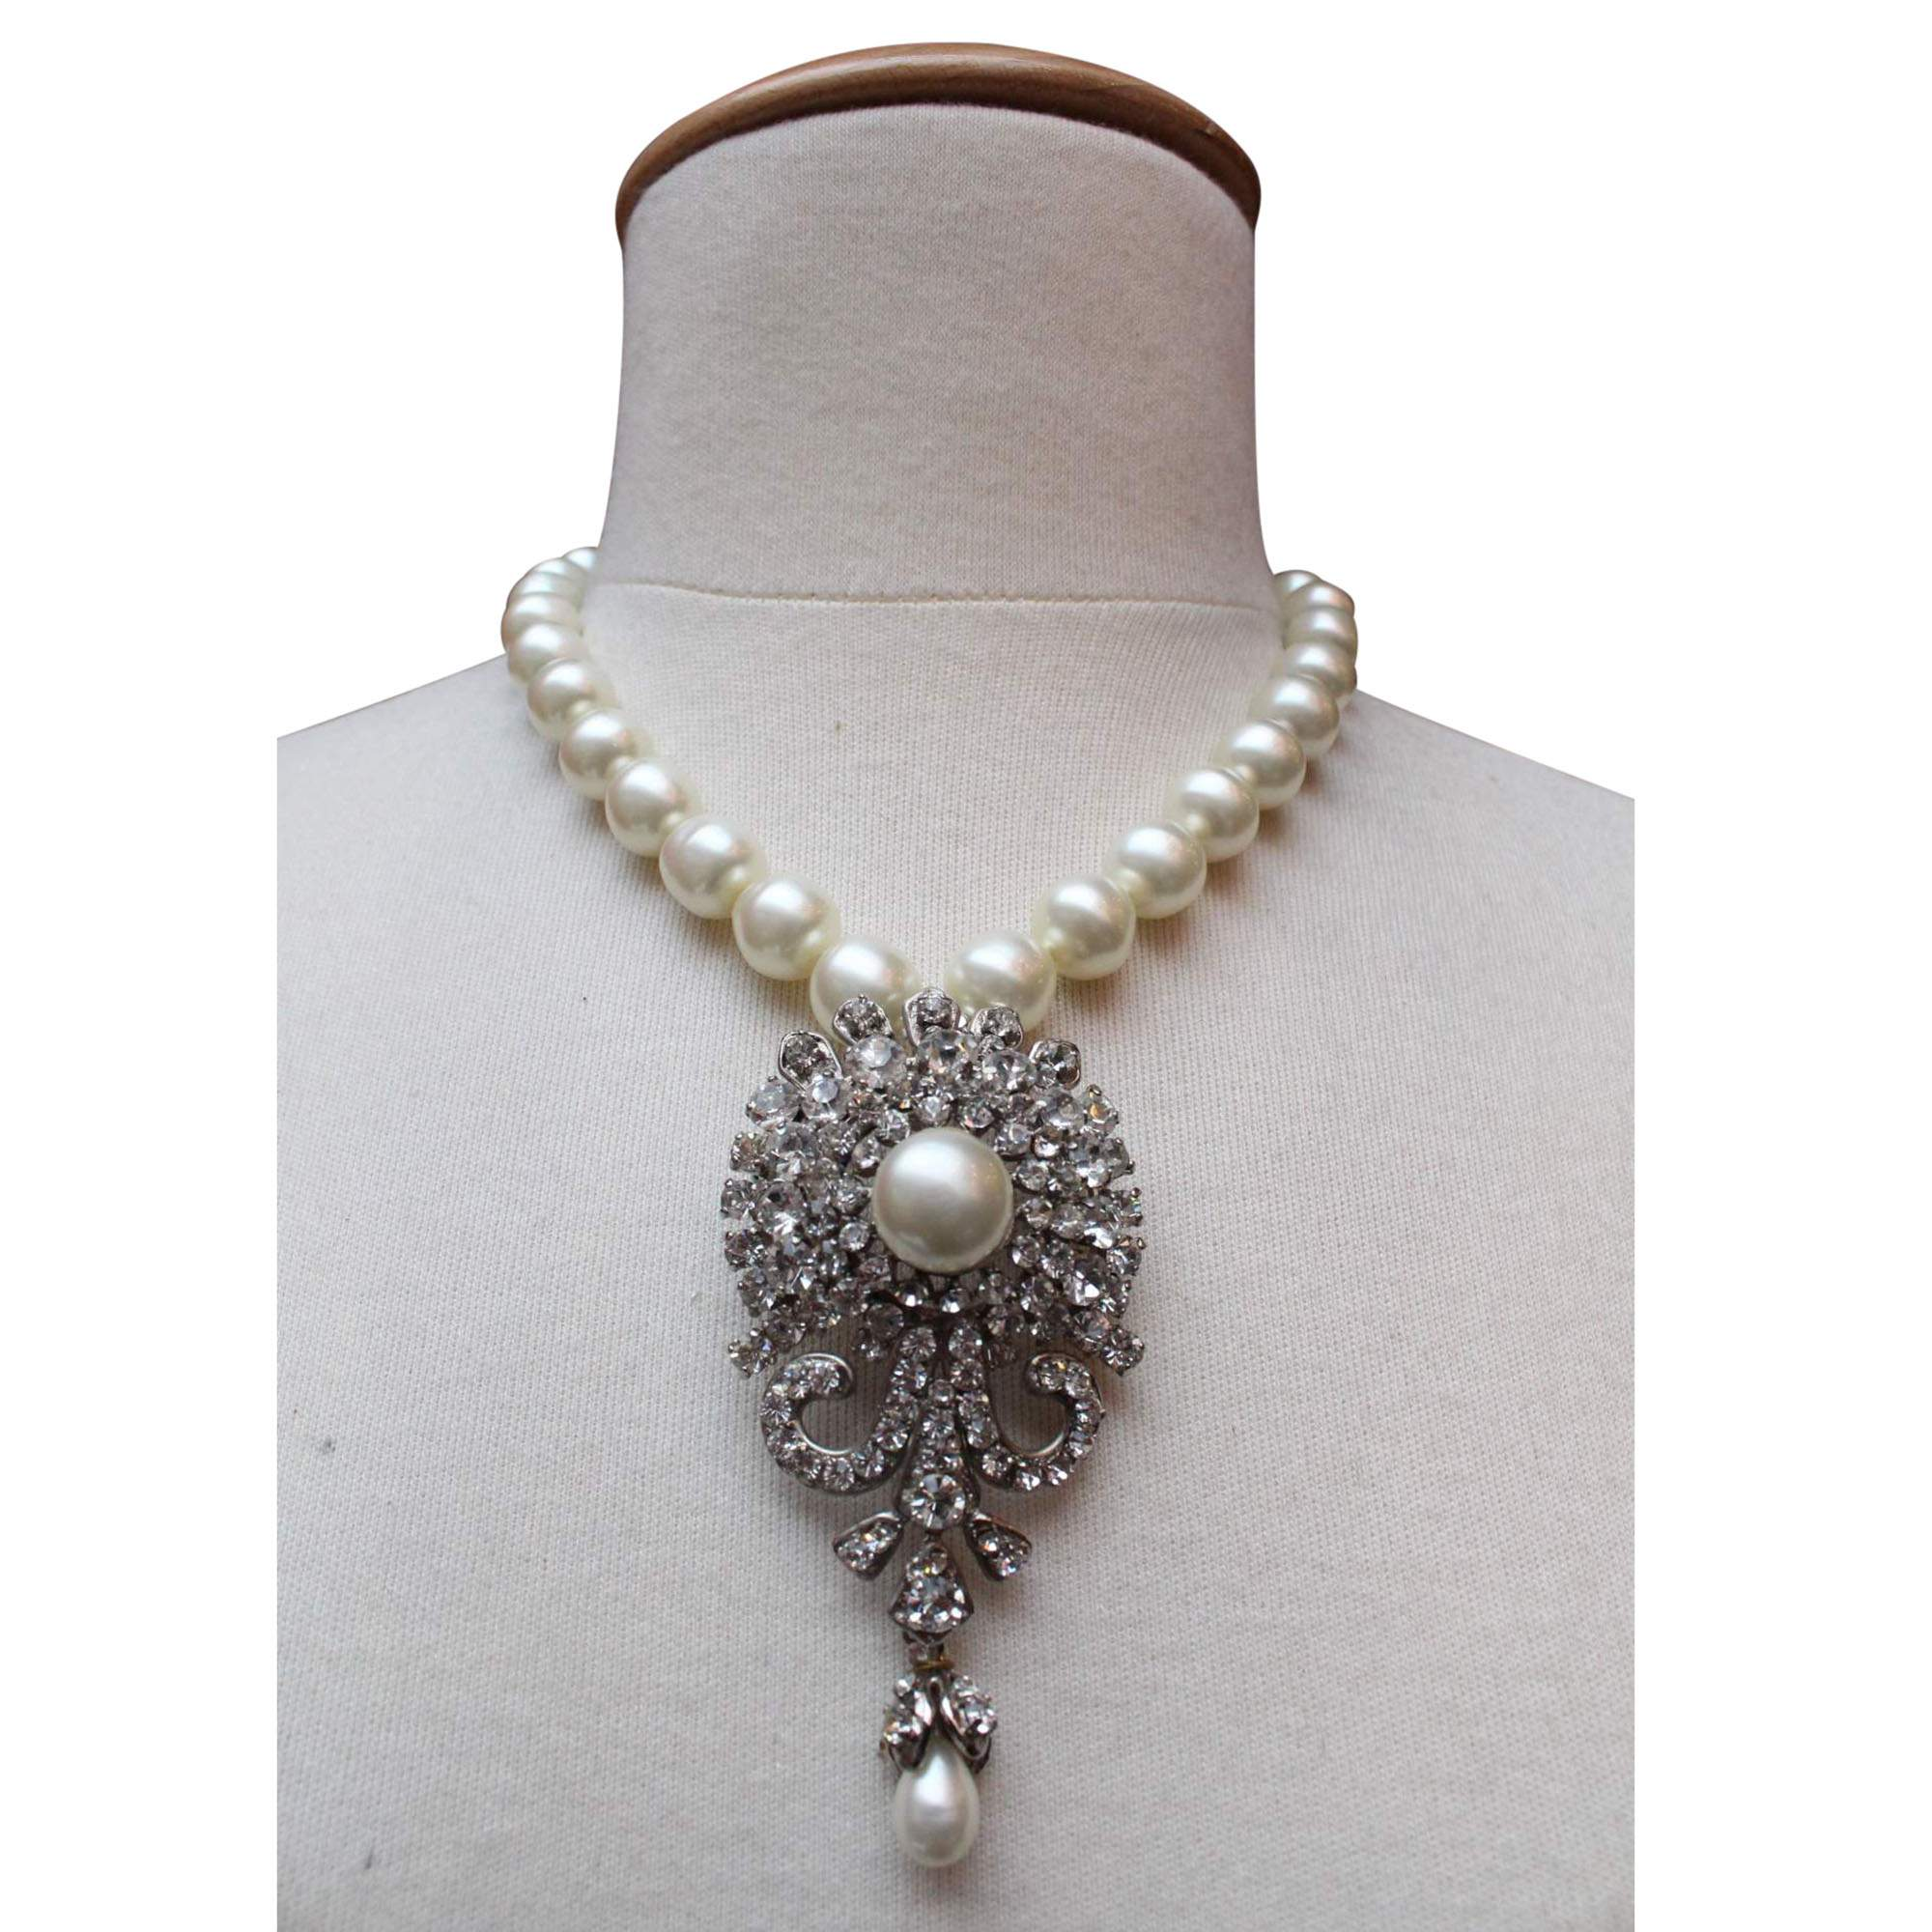 with gold rh item necklace full pendant click in to solid brooch and victorian a silver expand era